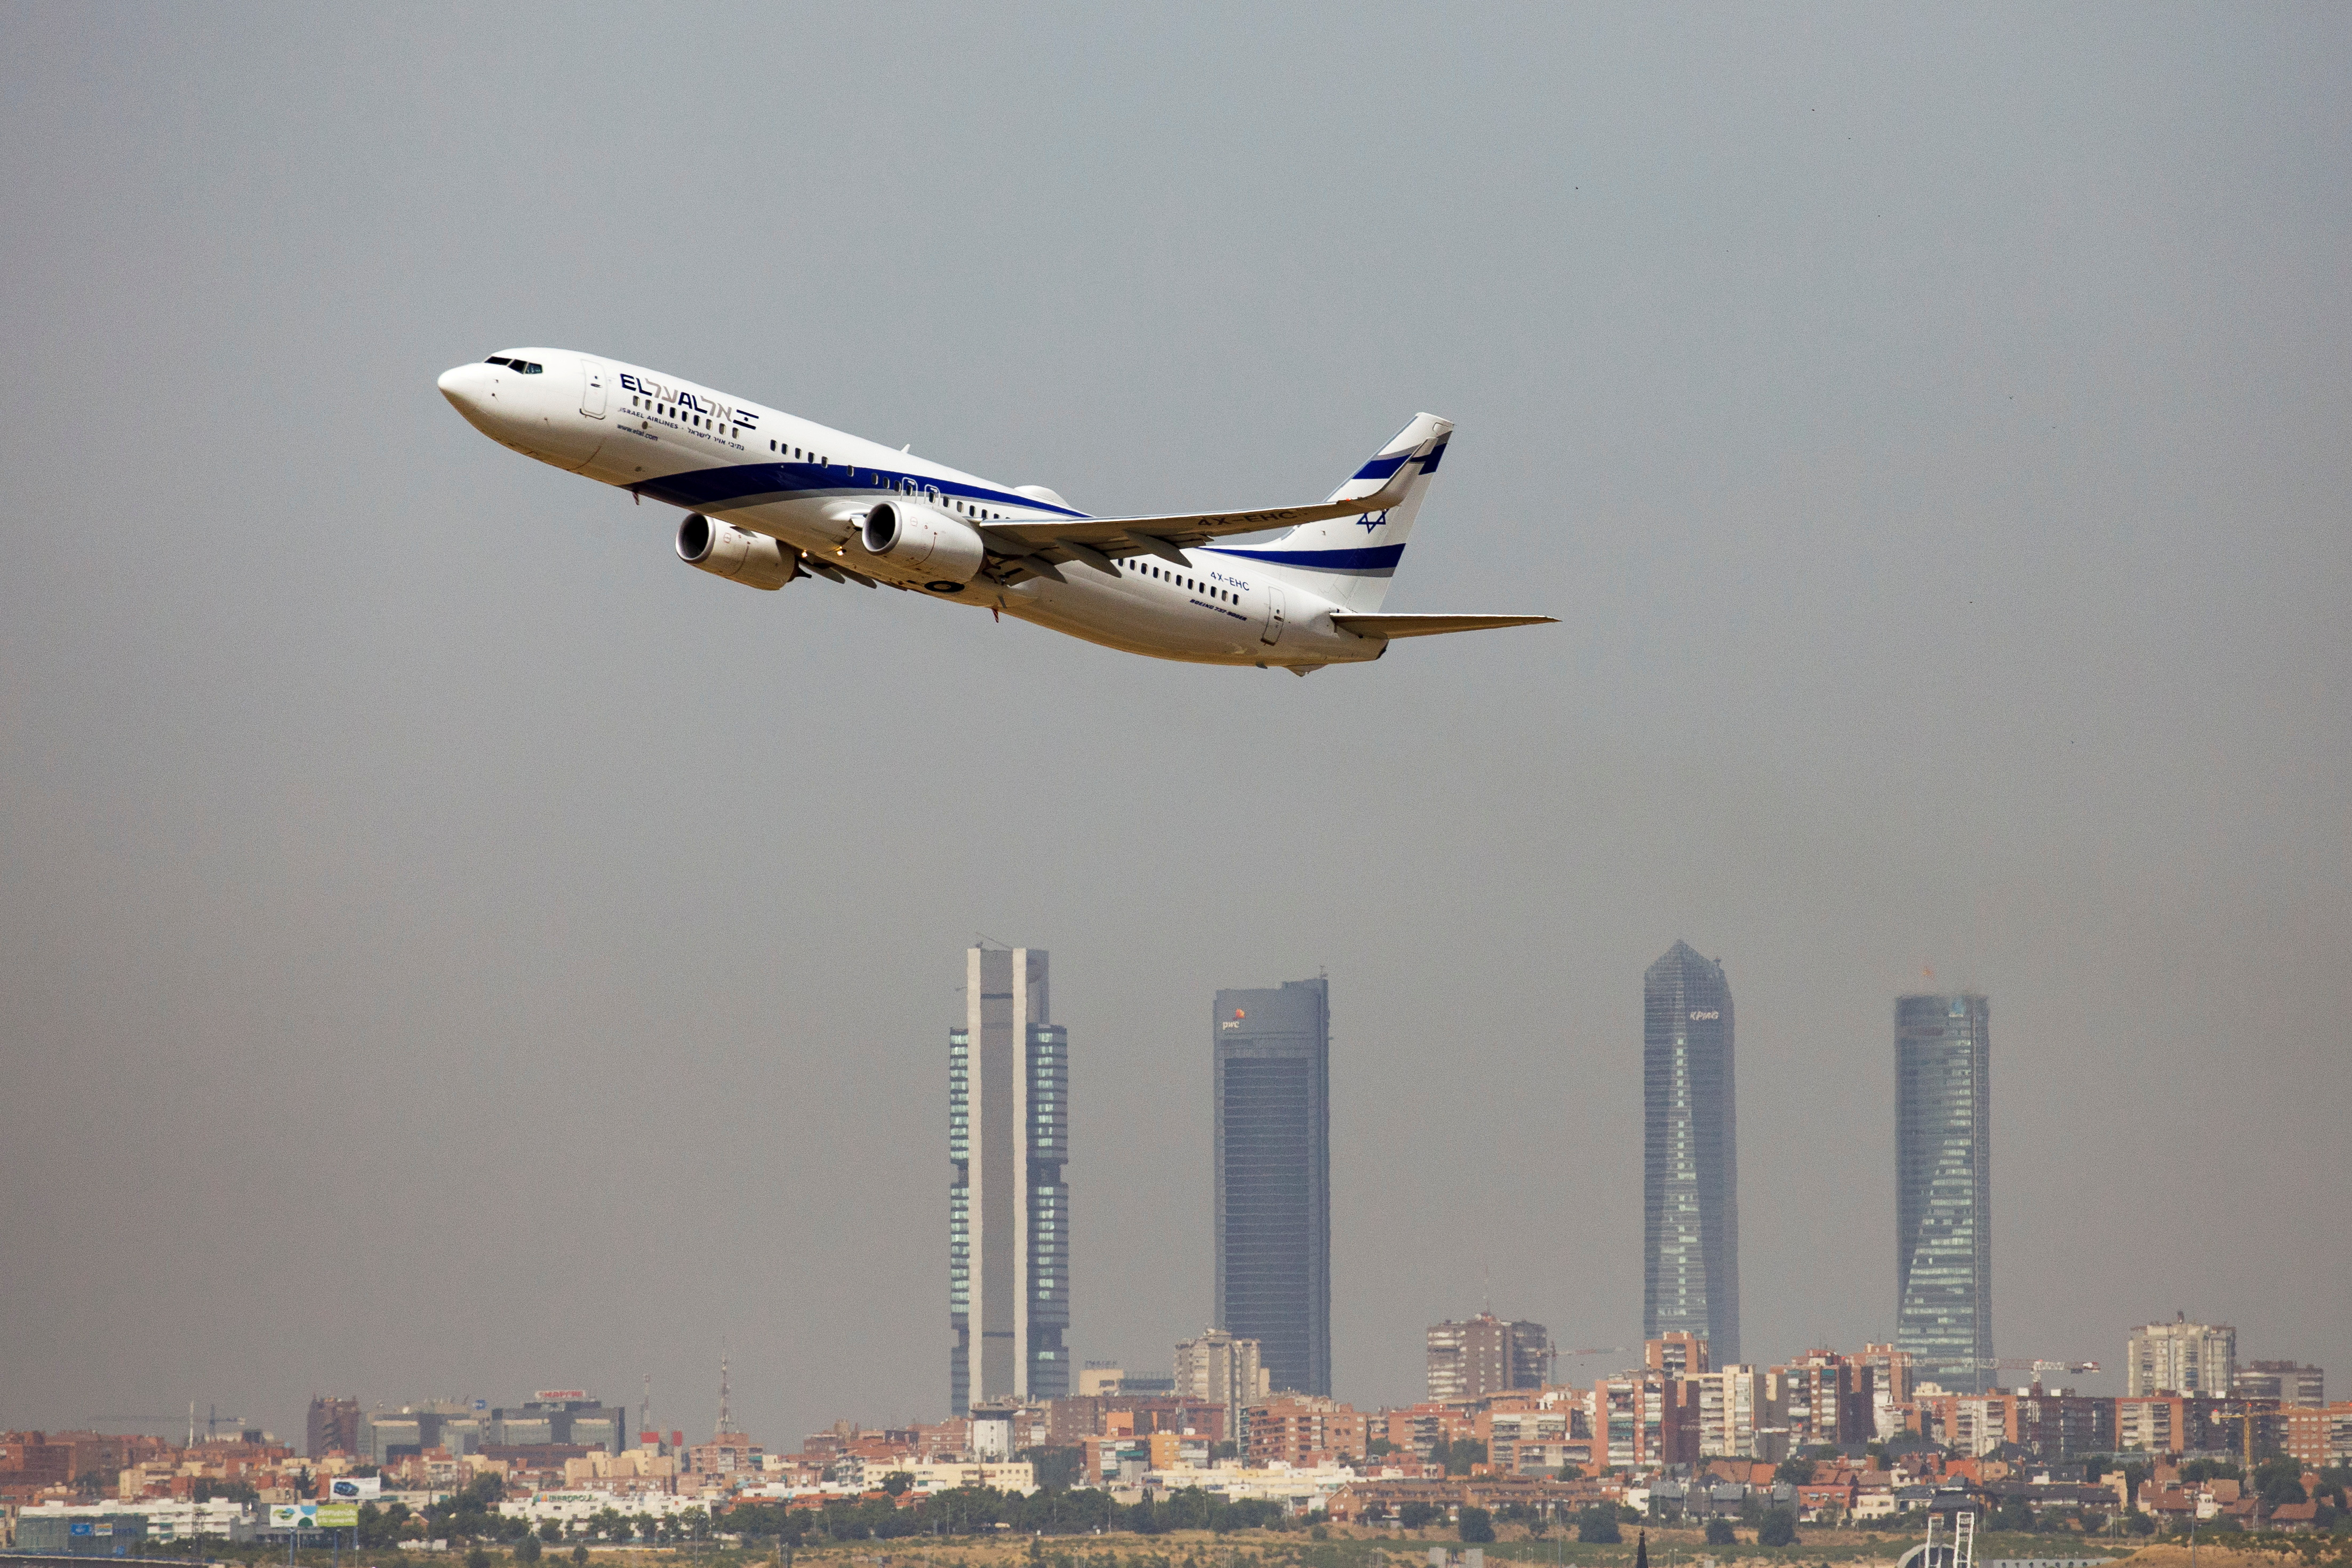 An El Al Israel Airlines Boeing 737-900ER airplane takes off from the Adolfo Suarez Madrid-Barajas airport as seen from Paracuellos del Jarama, outside Madrid, Spain, August 8, 2018.  REUTERS/Paul Hanna/File Photo